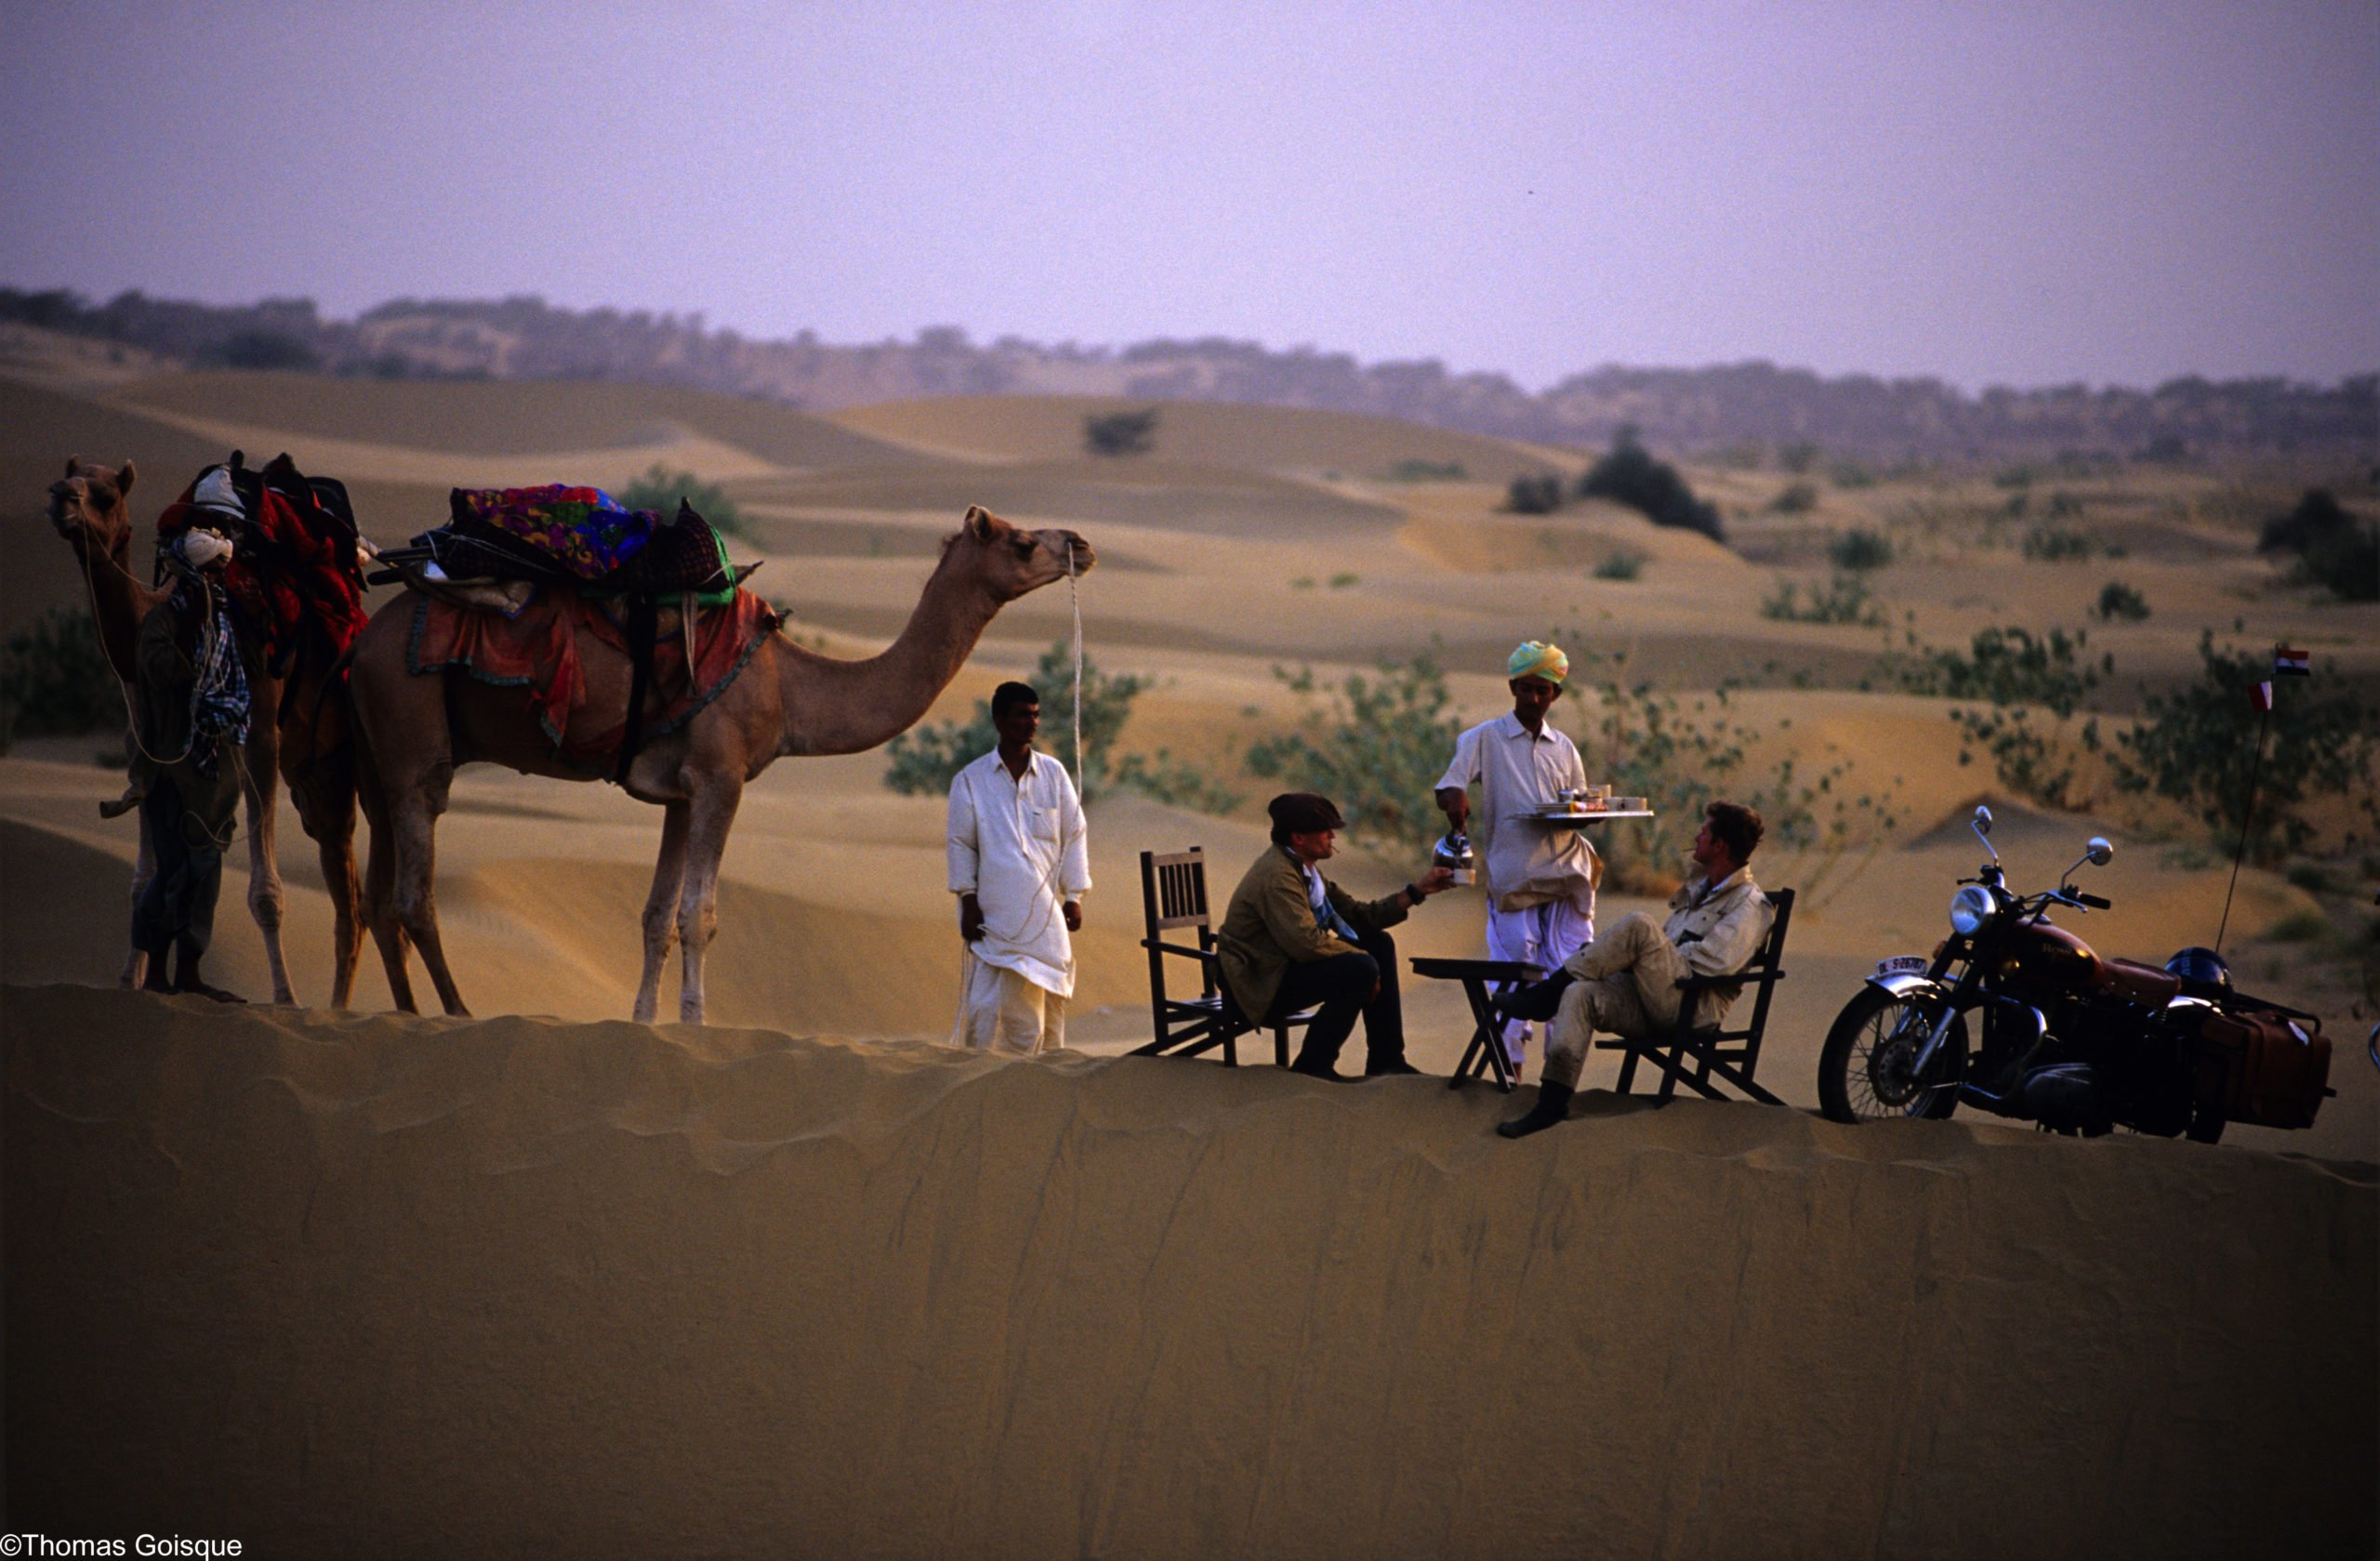 Motorcycle road trip India / North India - Luxury Tour in Rajasthan